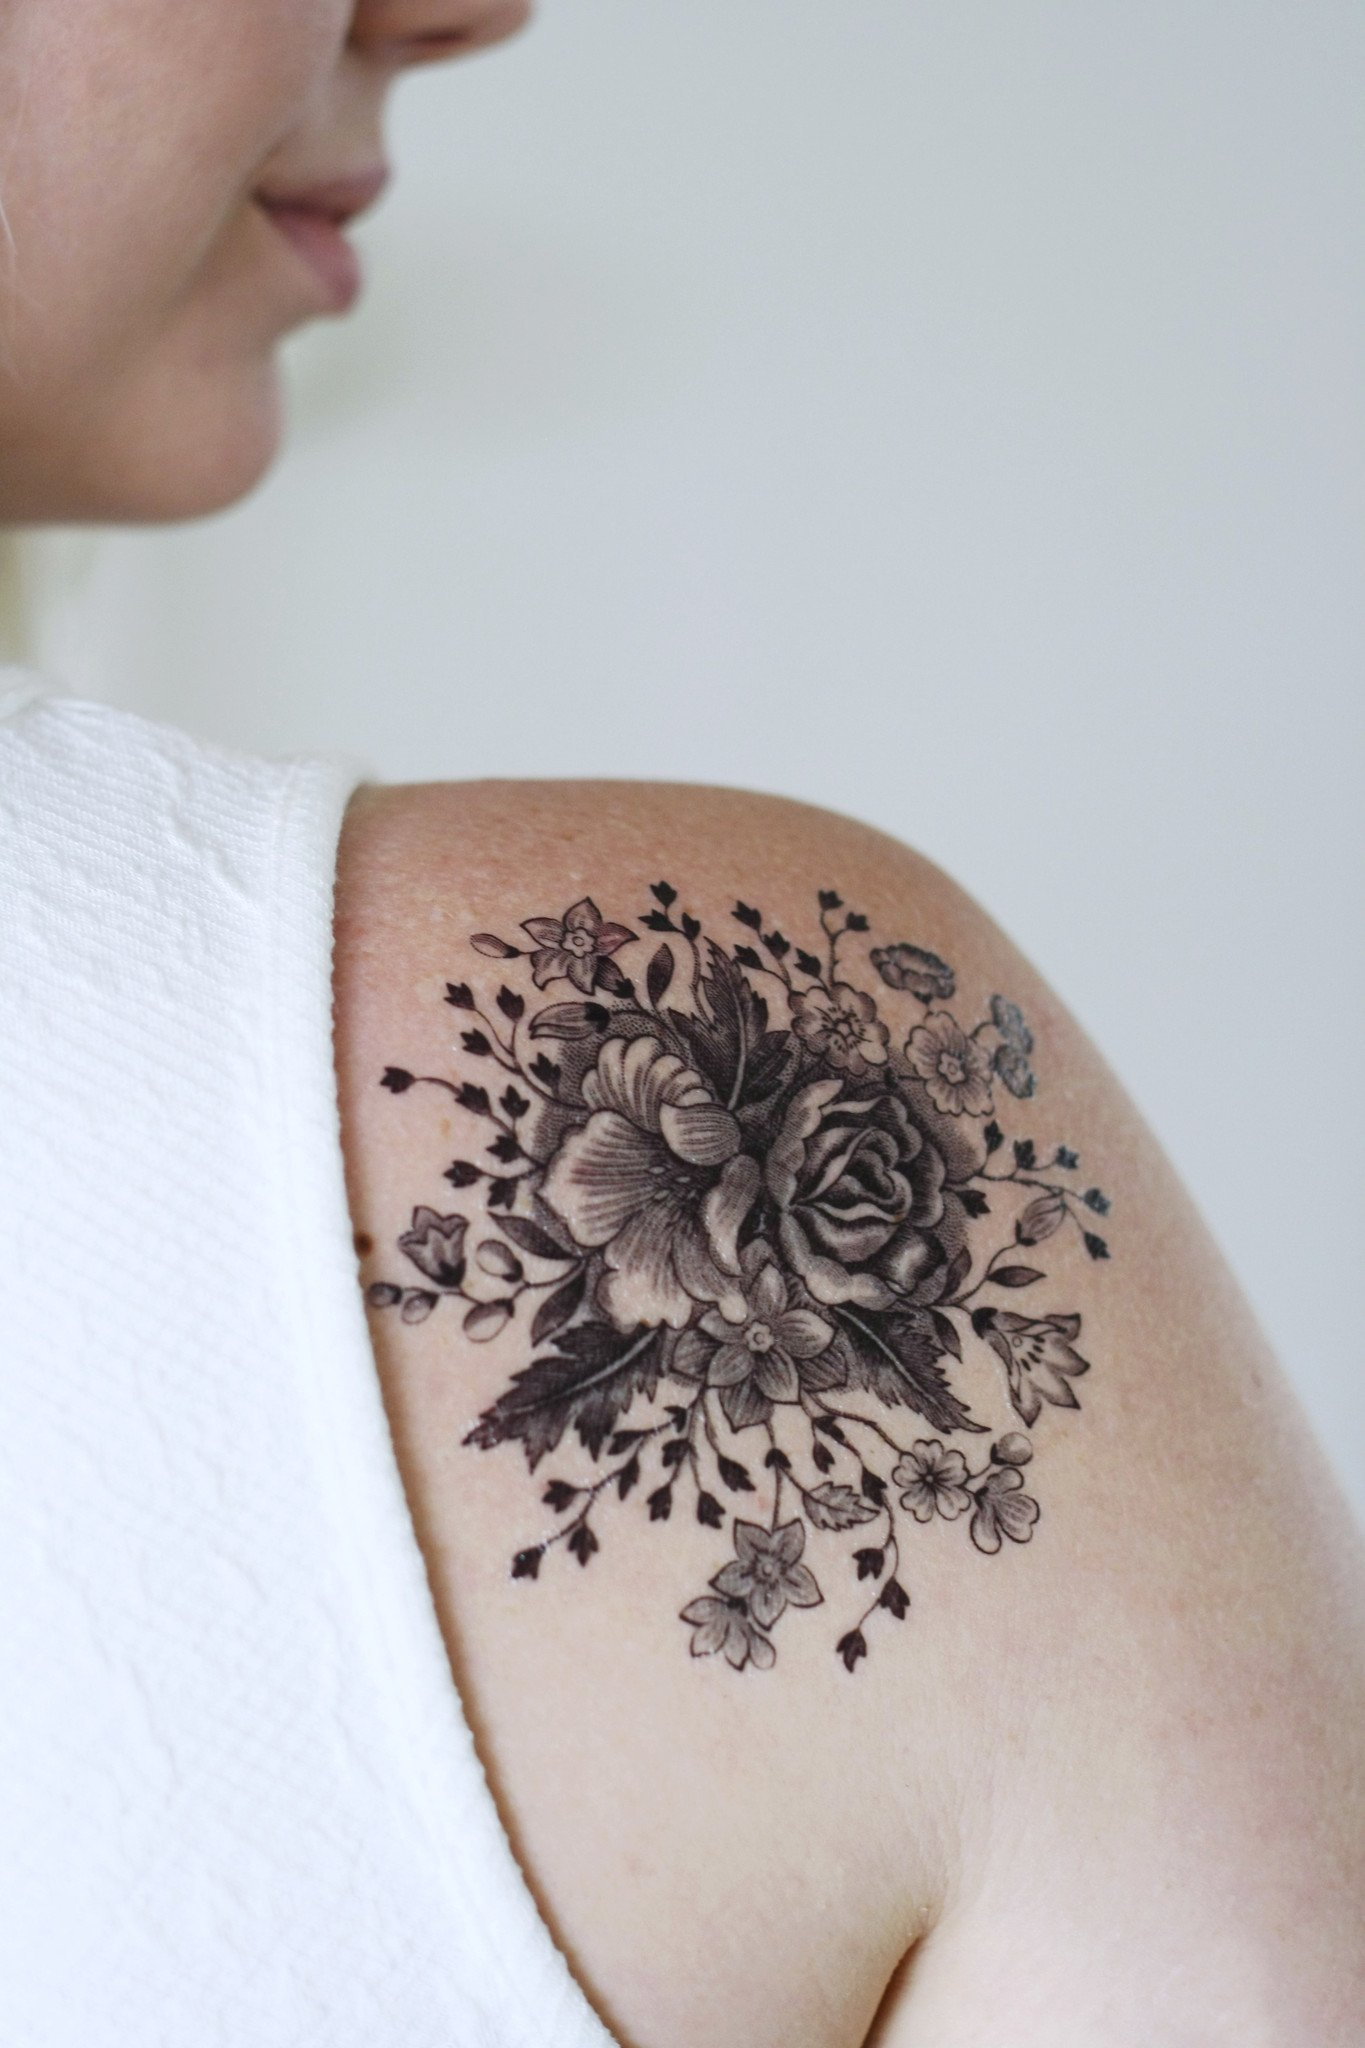 b54ba5647 Large vintage floral temporary tattoo - a temporary tattoo by Tattoorary